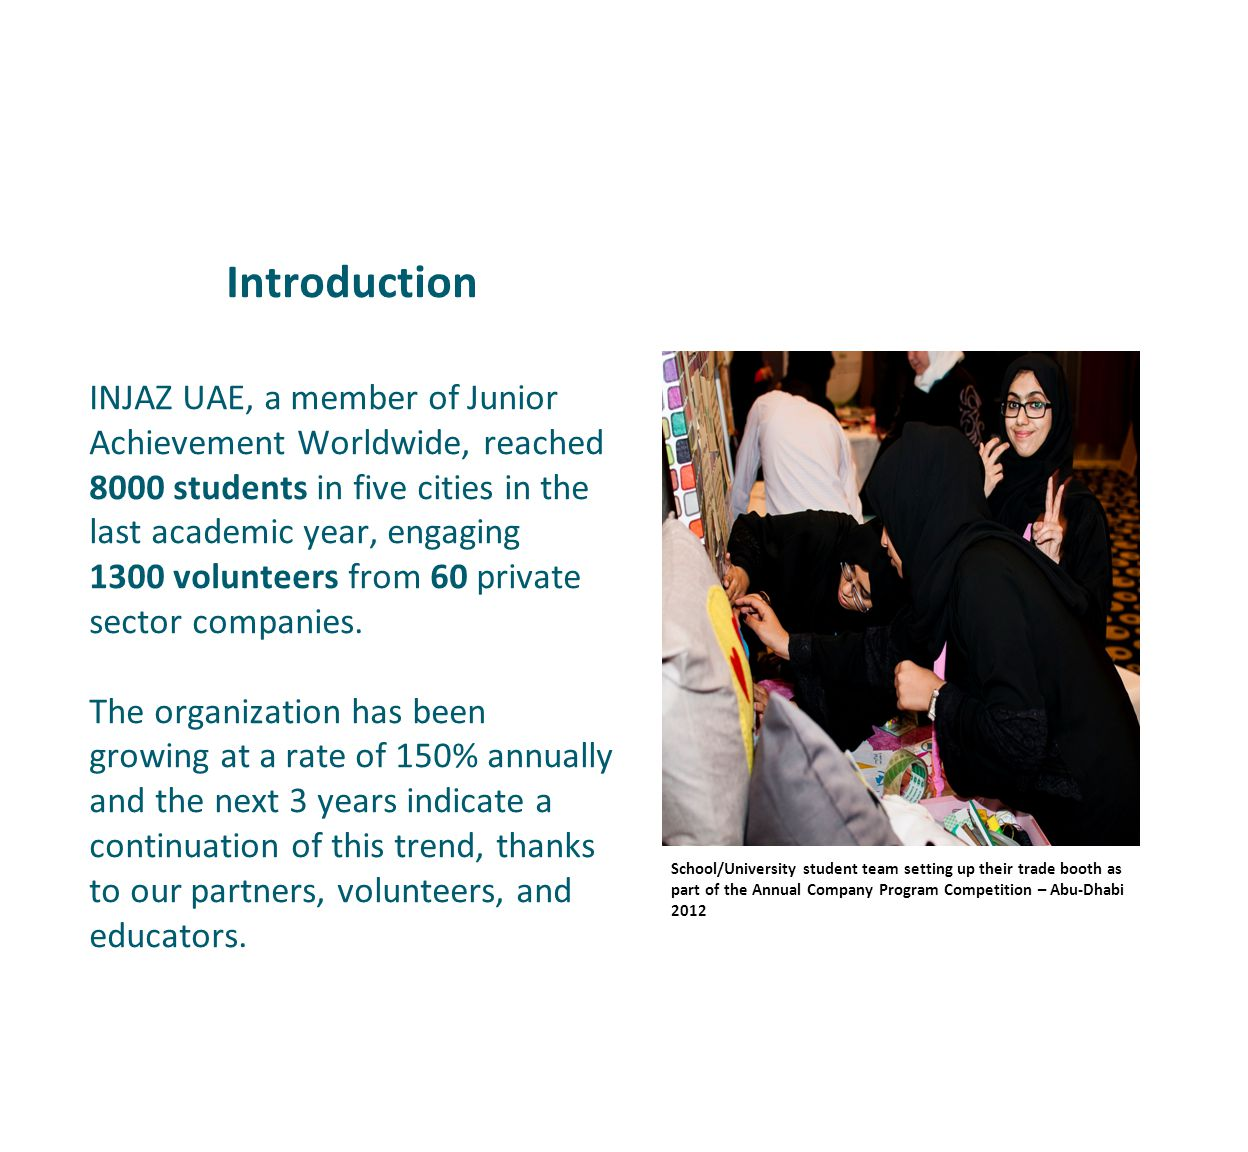 Introduction INJAZ UAE, a member of Junior Achievement Worldwide, reached 8000 students in five cities in the last academic year, engaging 1300 volunteers from 60 private sector companies.